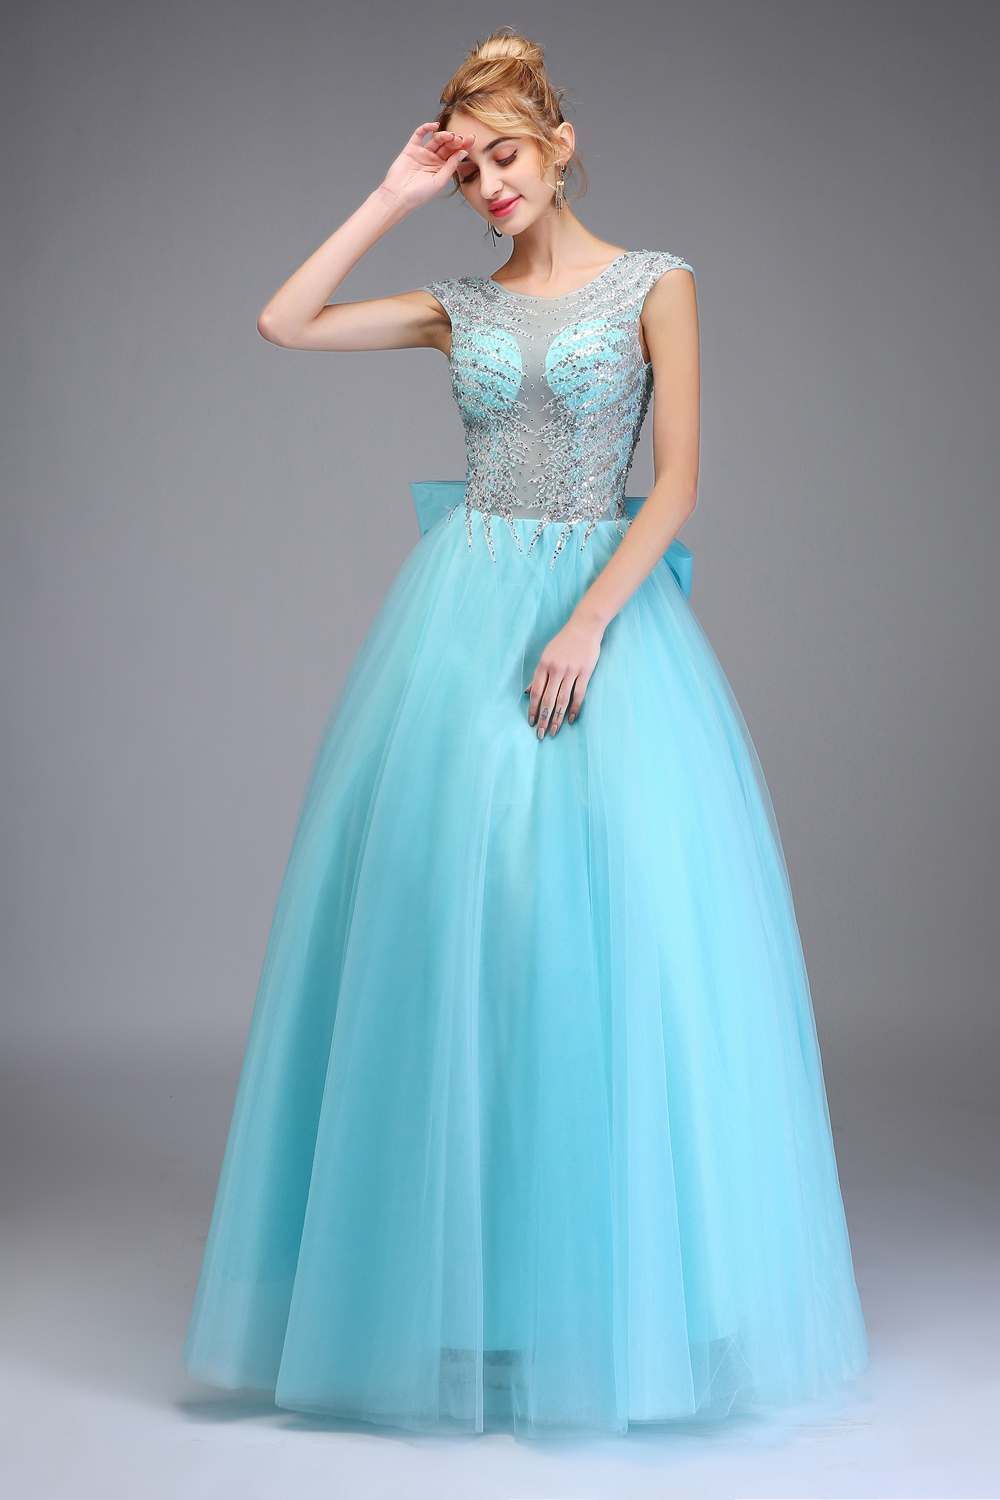 Ssyfashion 2018 New High End Evening Dress Luxury Crystal Beading